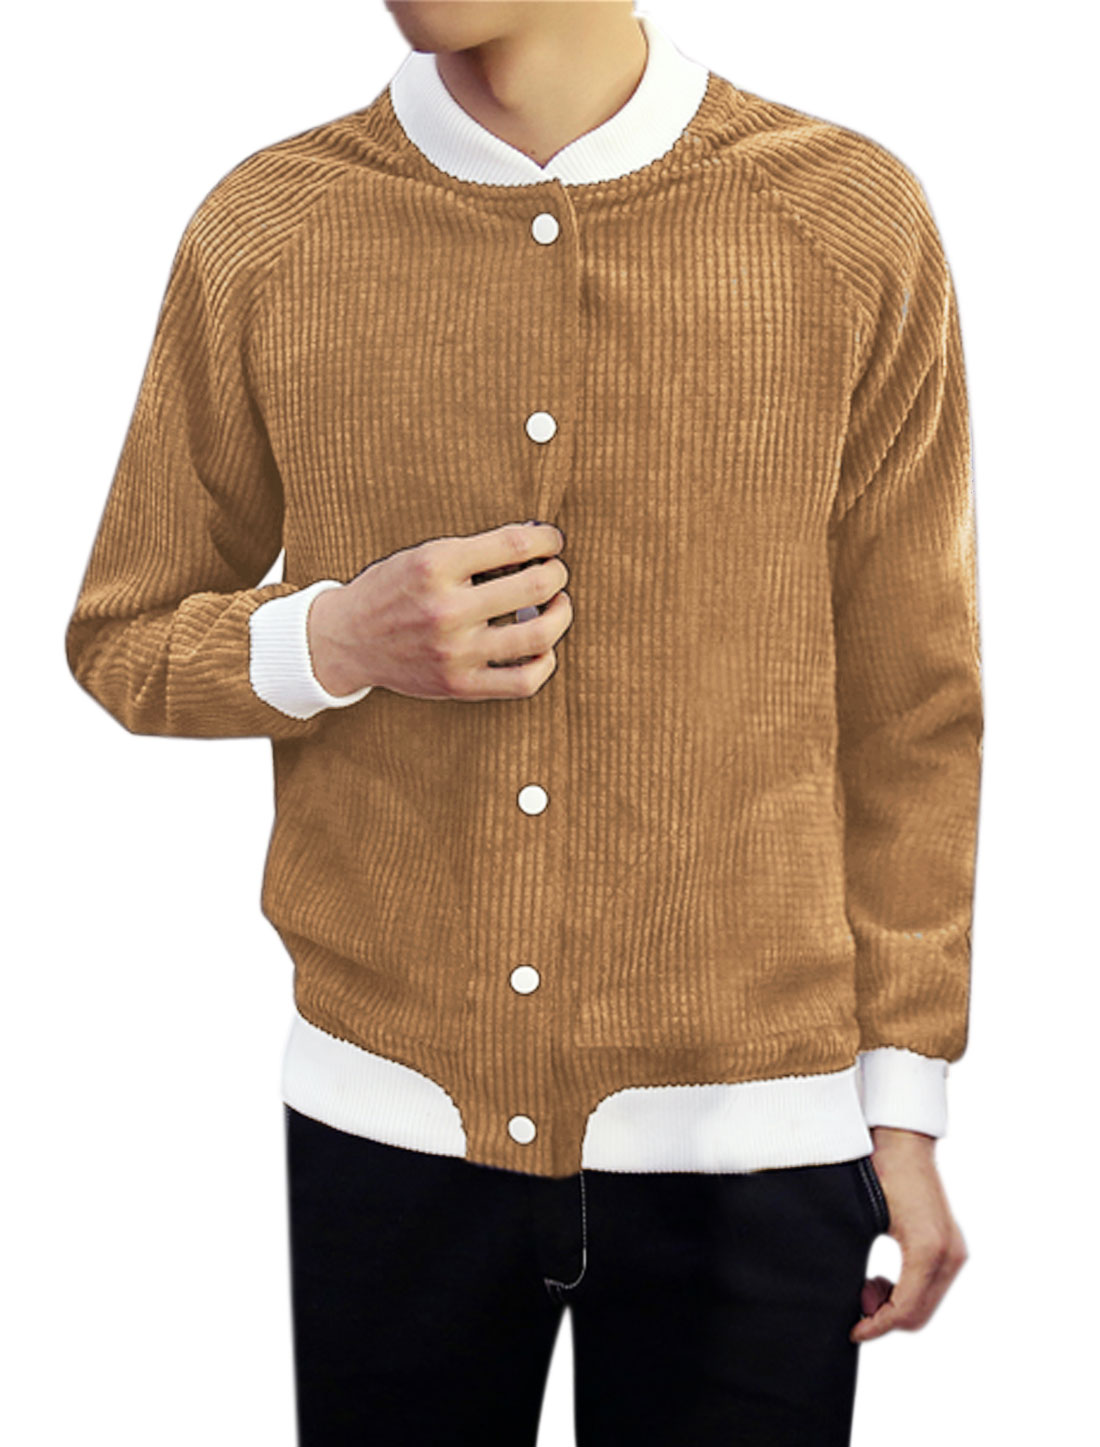 Men Snap Buttons Closure Contrast Color Textured Jacket Brown M